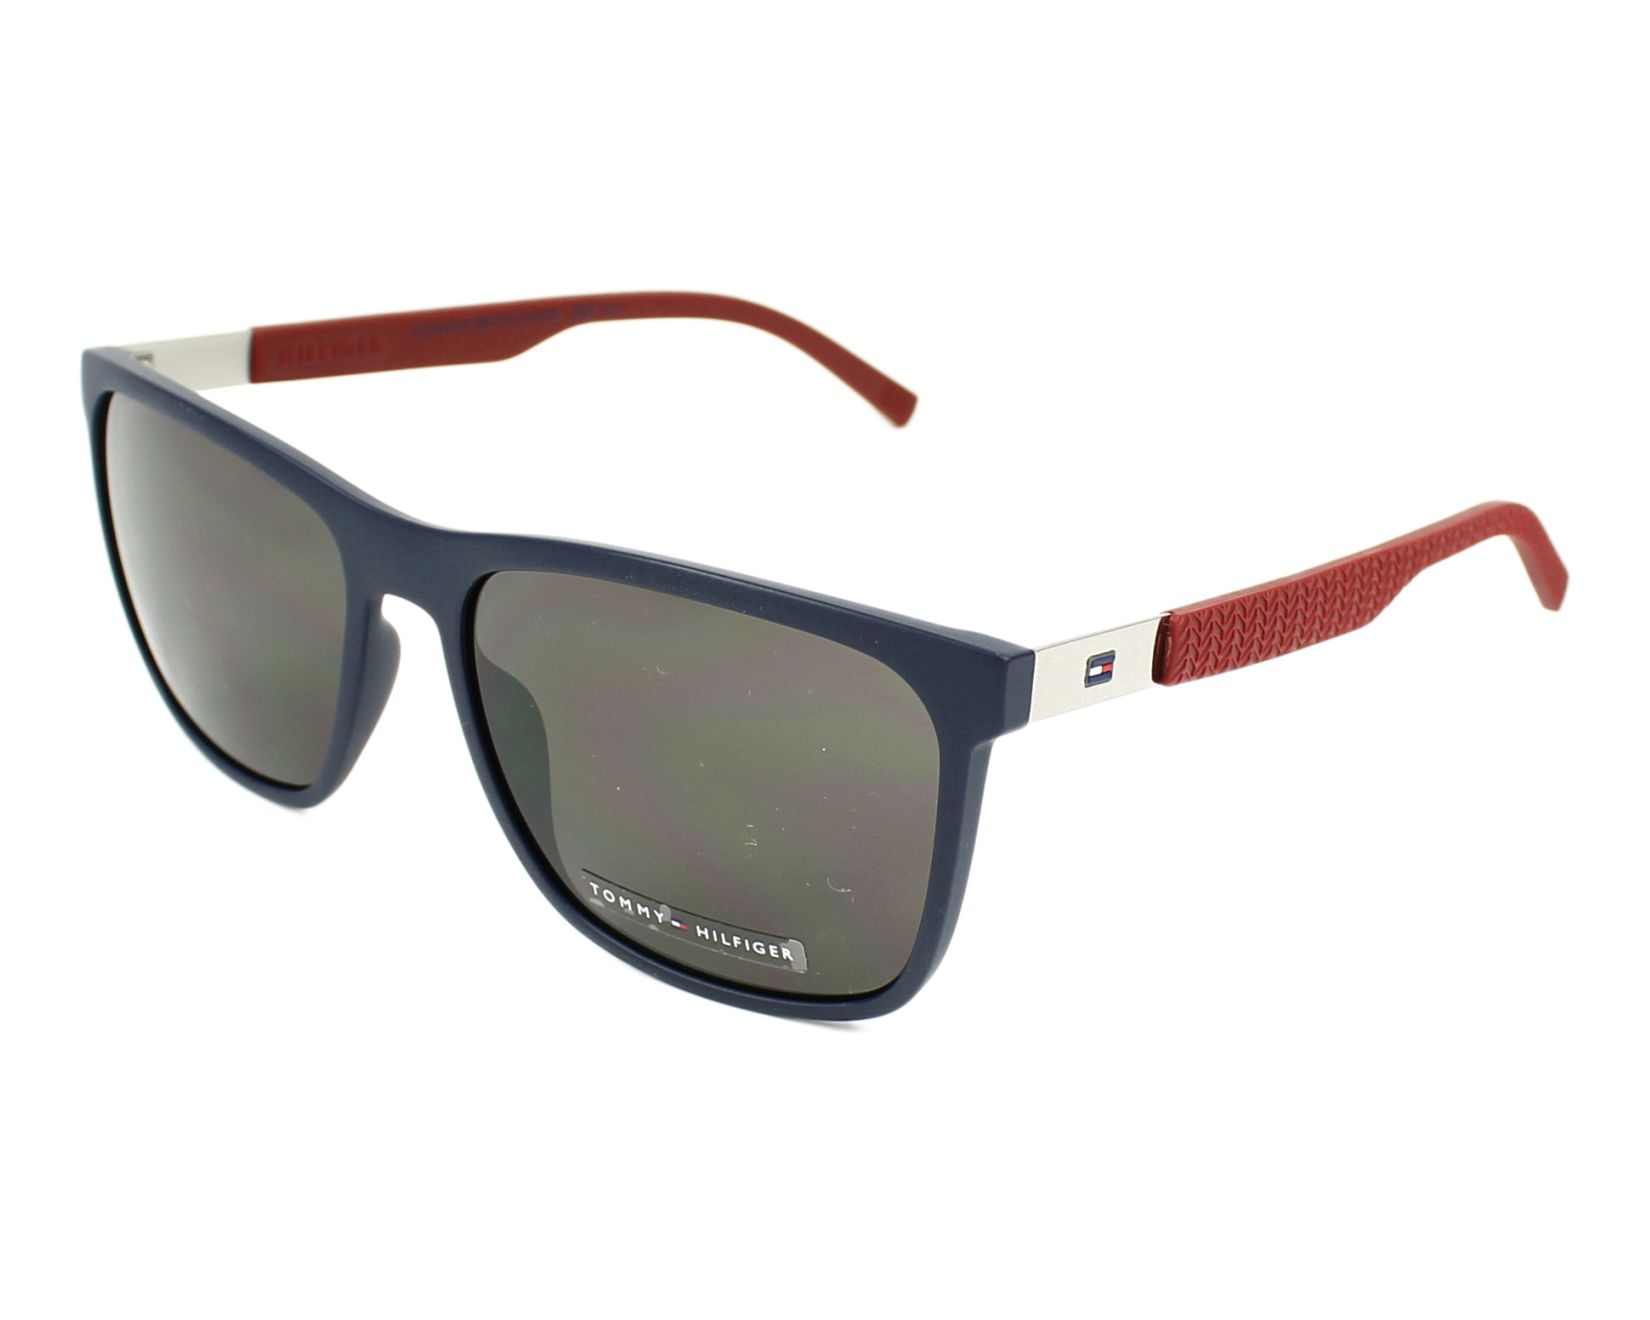 Sunglasses Tommy Hilfiger TH-1445-S LCN/NR - Blue Bordeaux profile view